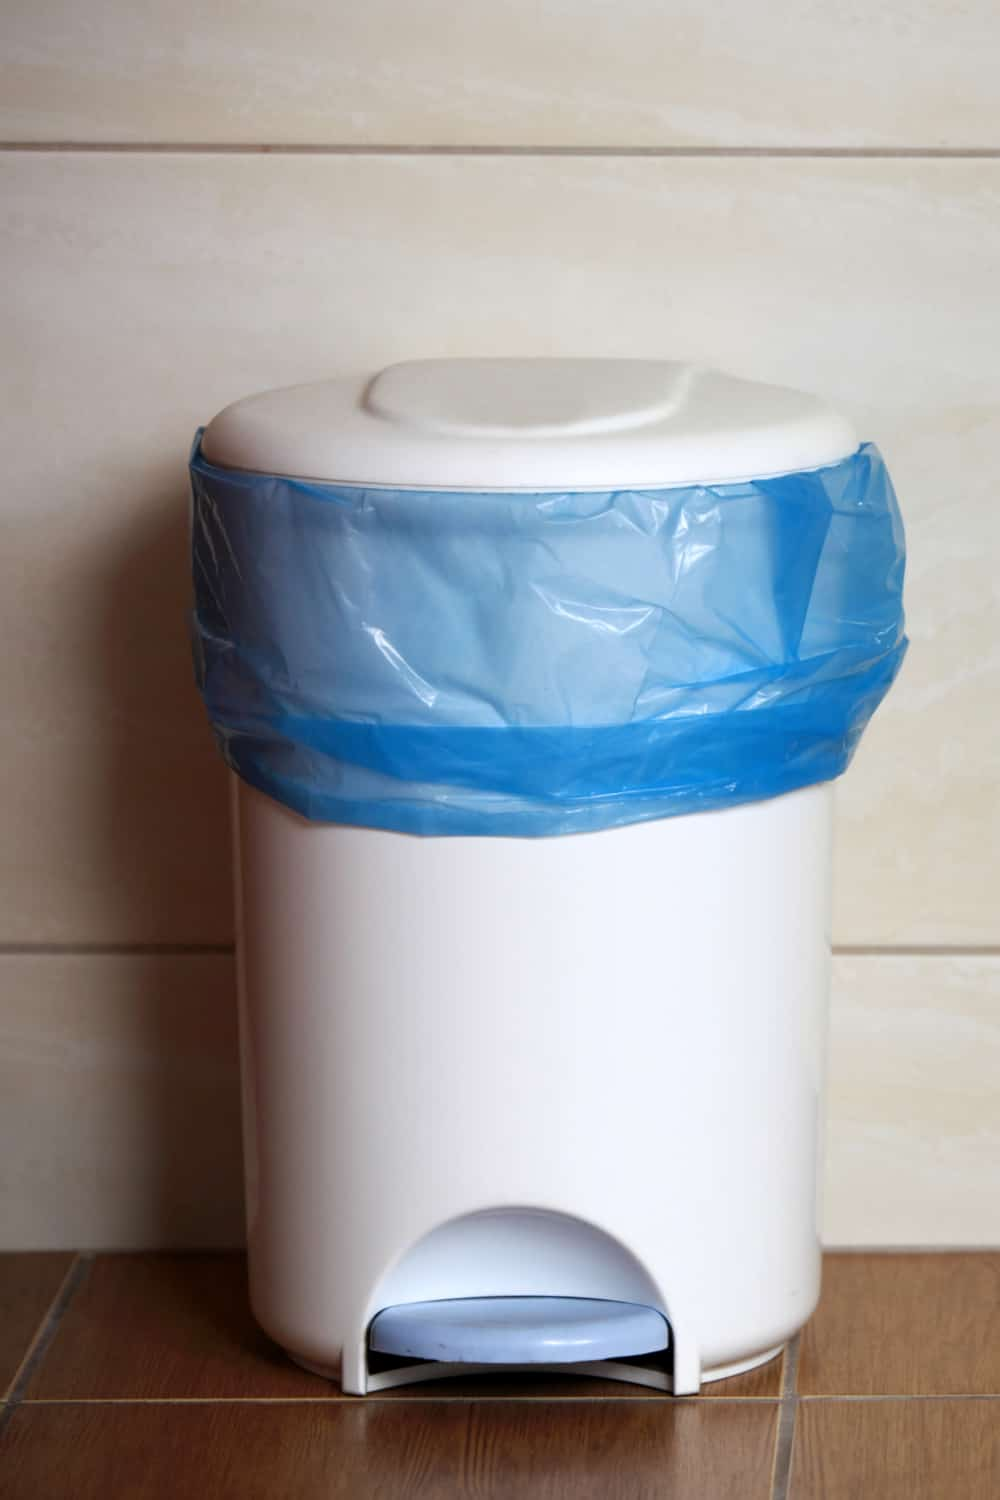 17 Homemade Trash Can Plans You Can Diy Easily